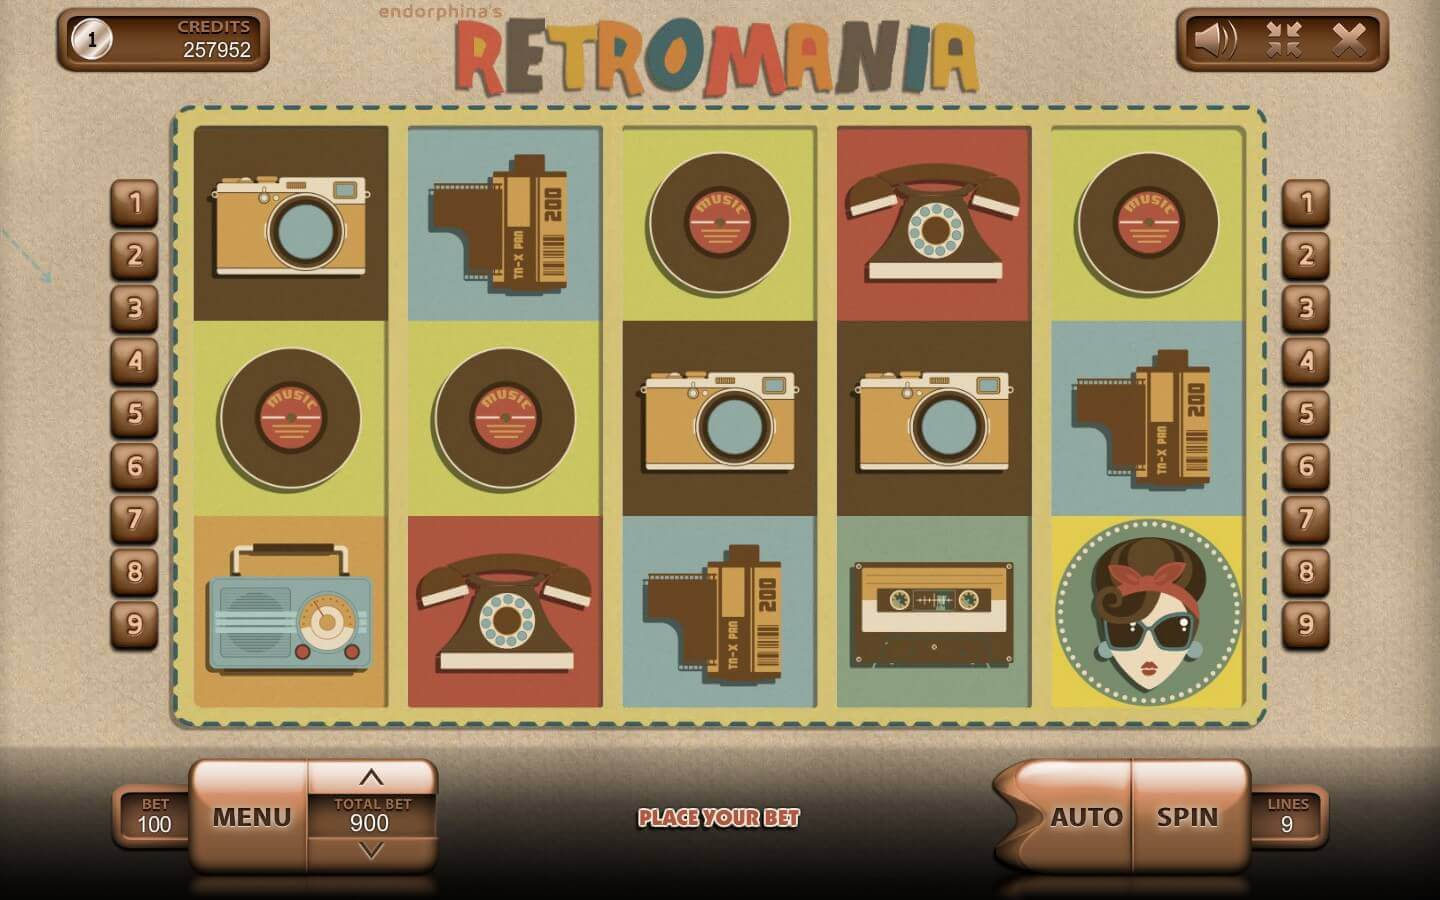 Retromania slot free play